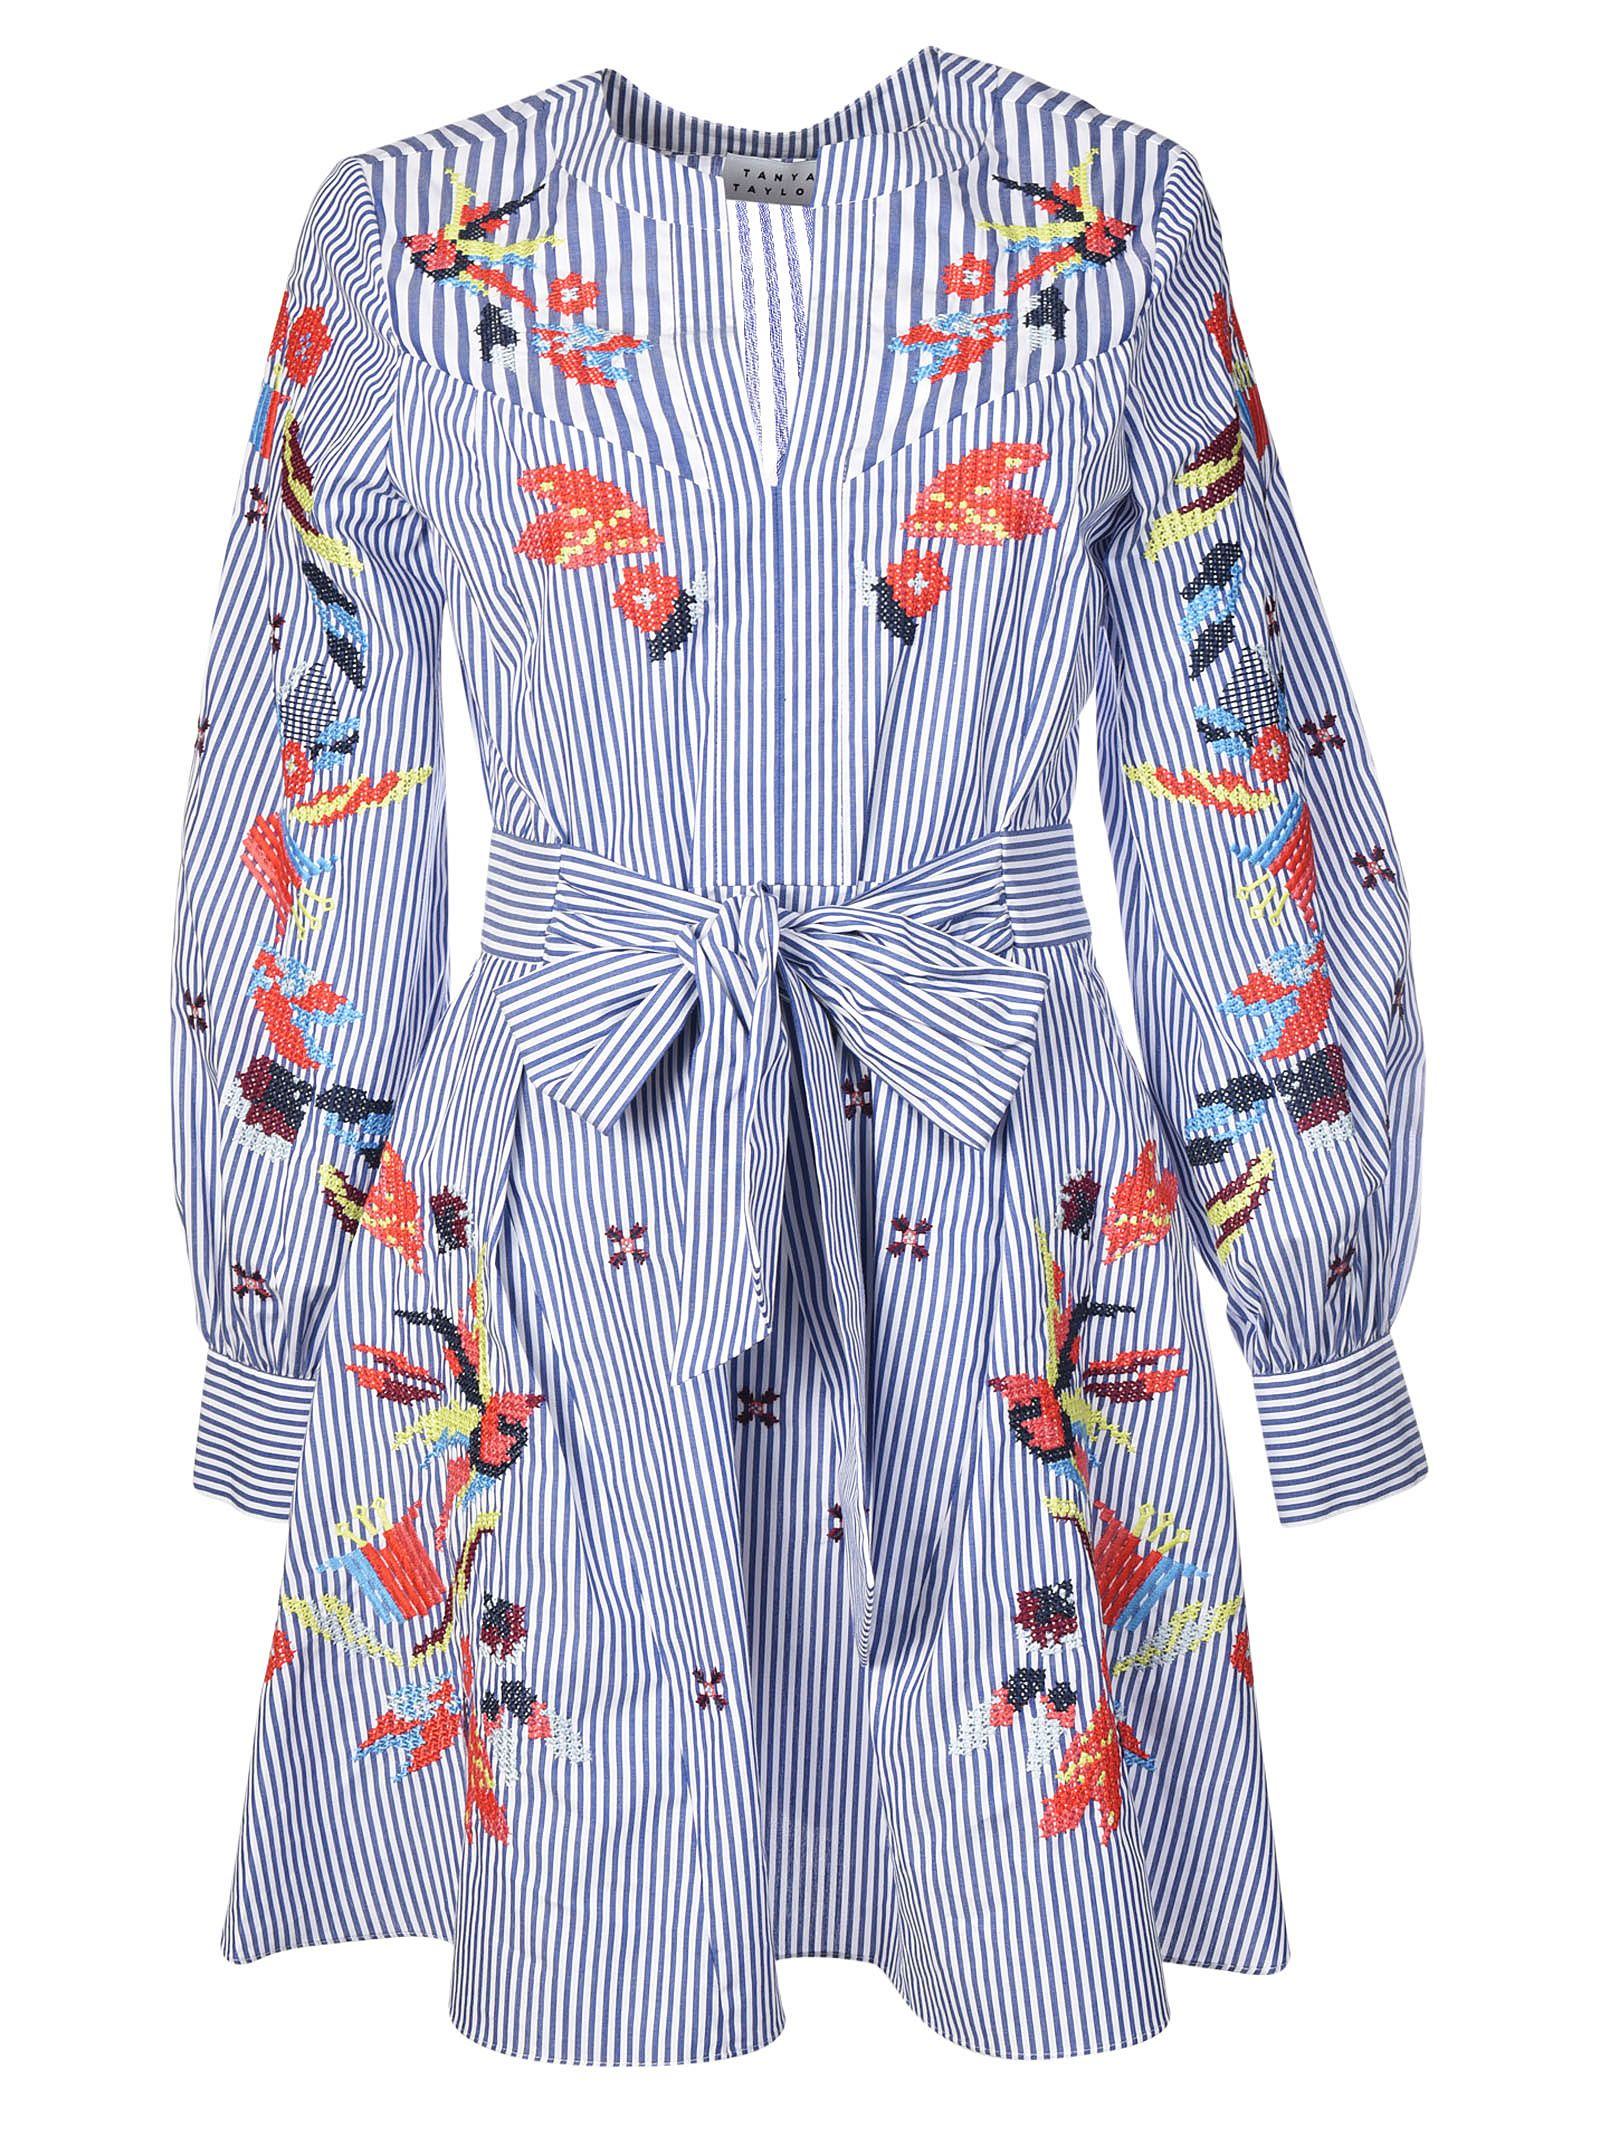 Tanya Taylor Embroidered Stripe Caro Dress